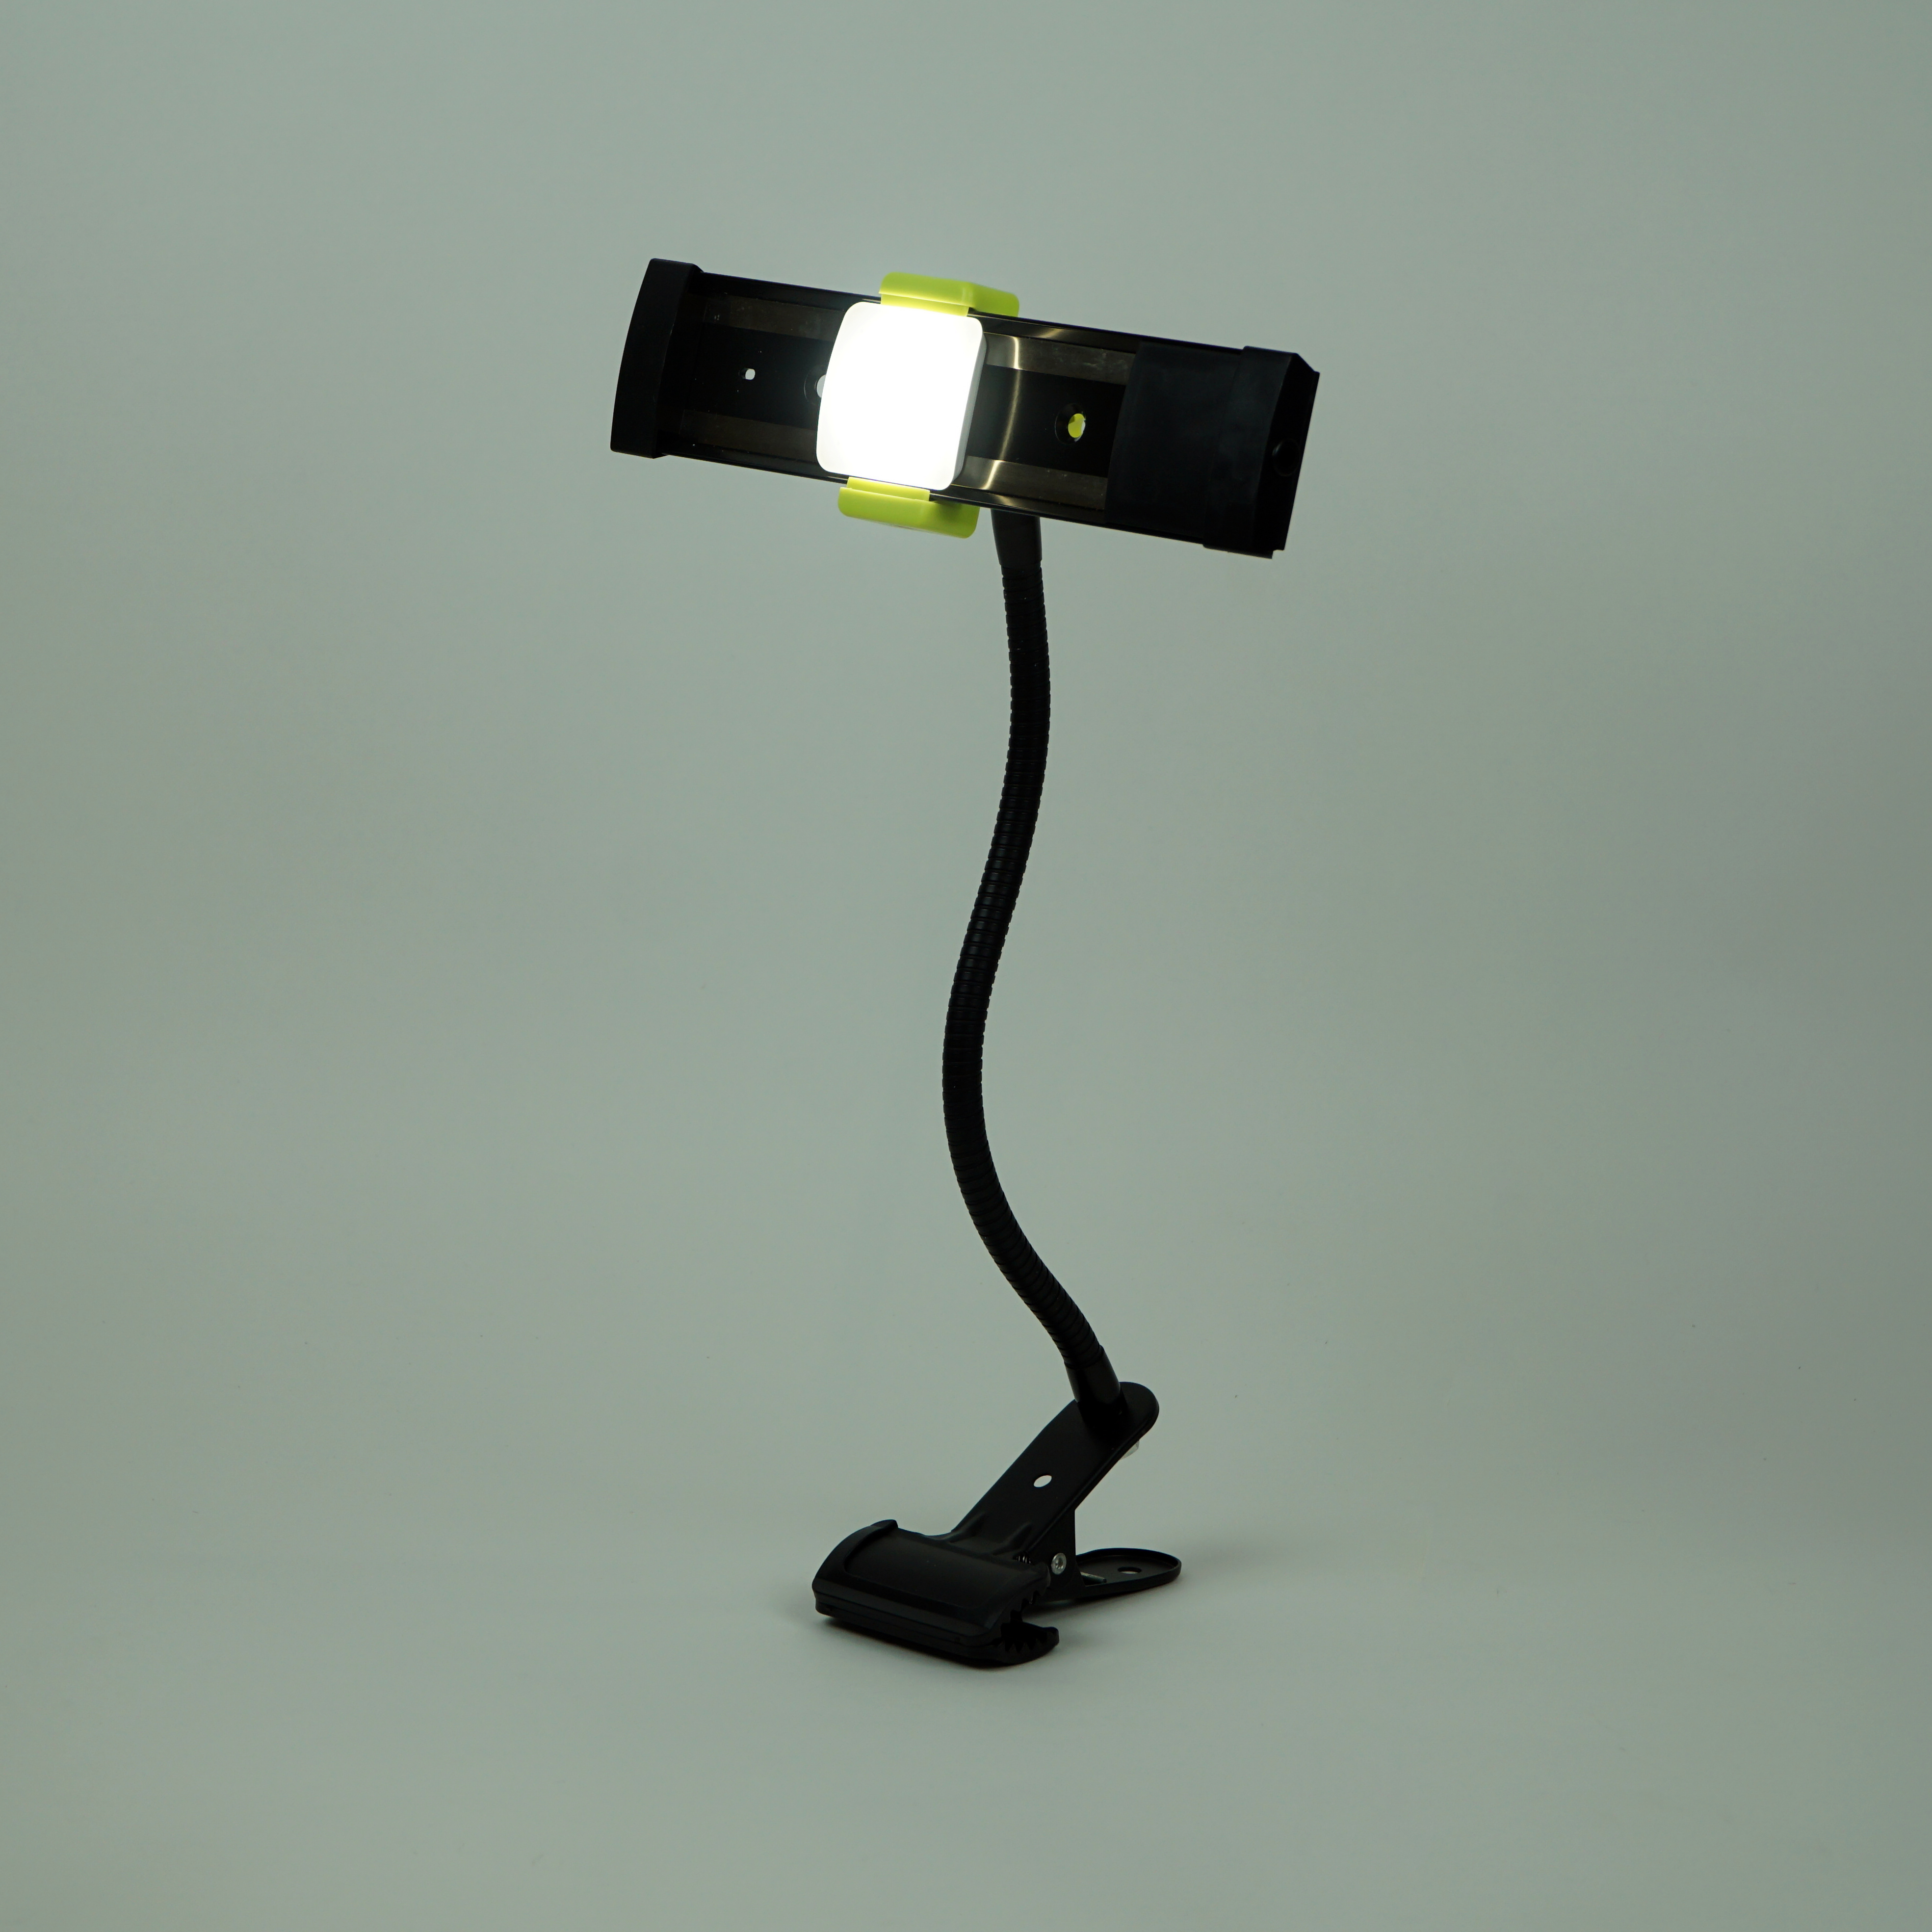 light imagination reading target top marvelous clamp contemporary high on lamps intensity lamp desk lighting